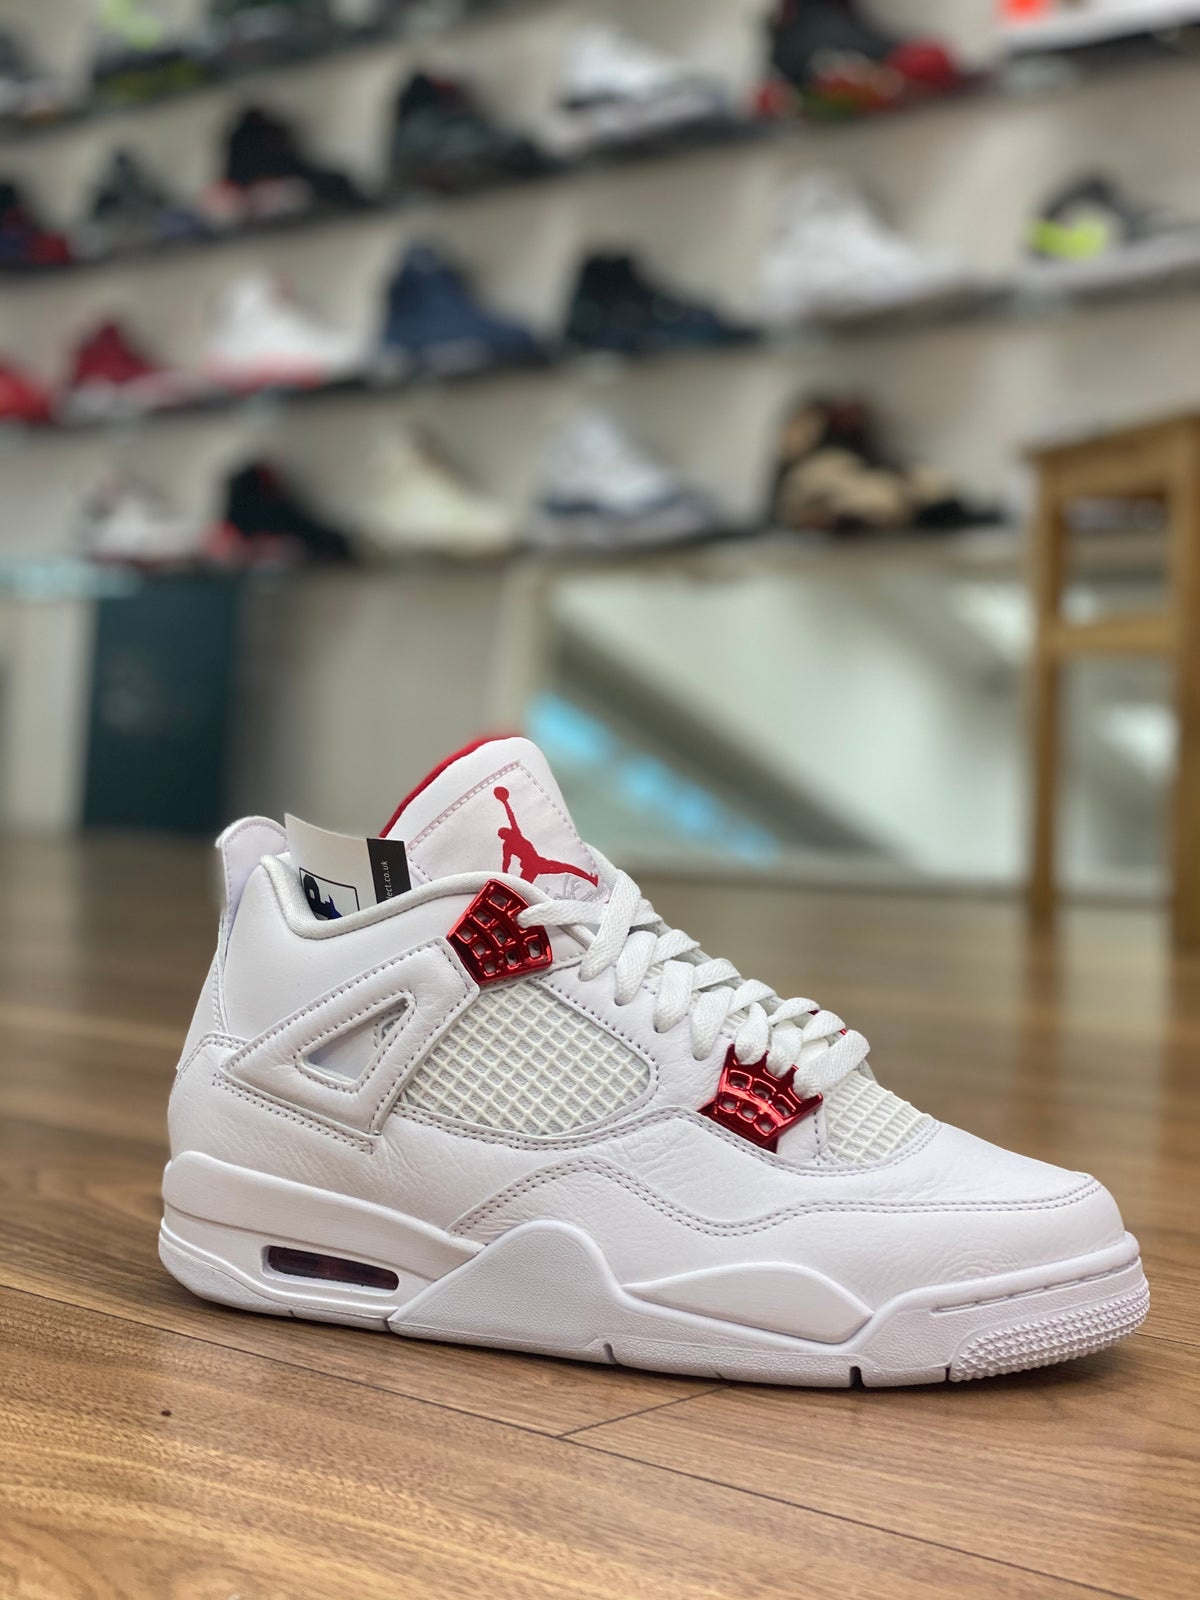 Off-White x AJ4 Metallic Red